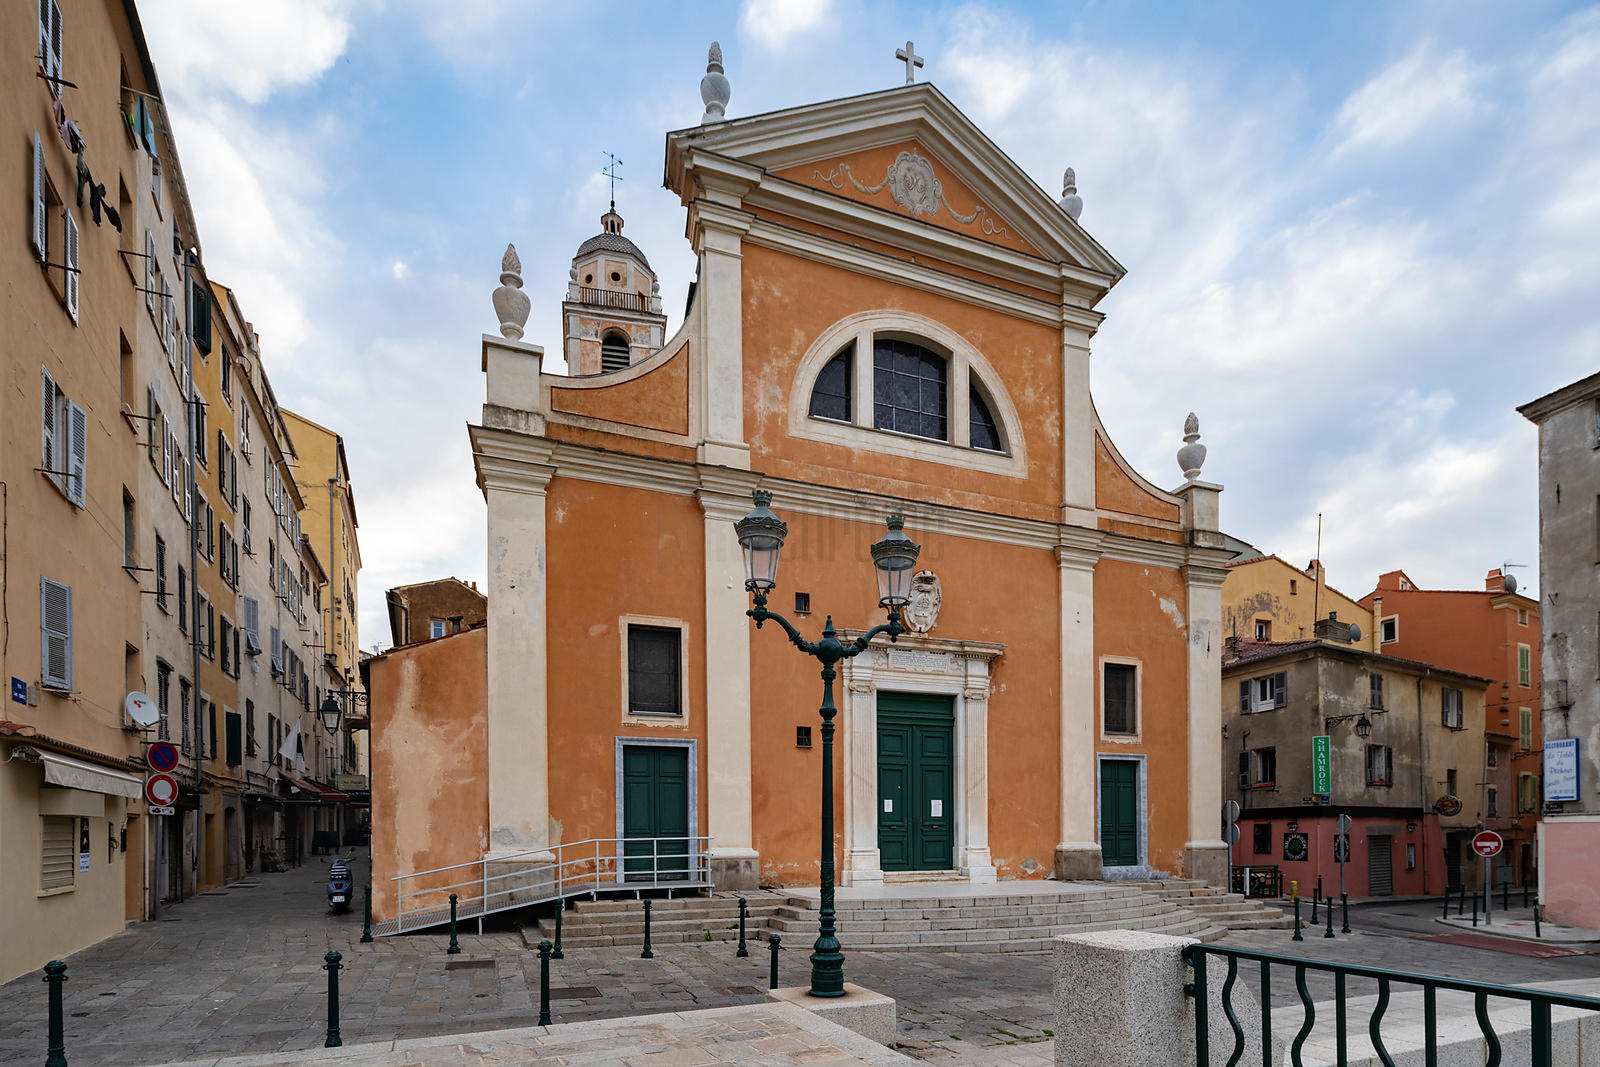 The Venetian Rennaissance Facade of the Ajaccio Cathedral